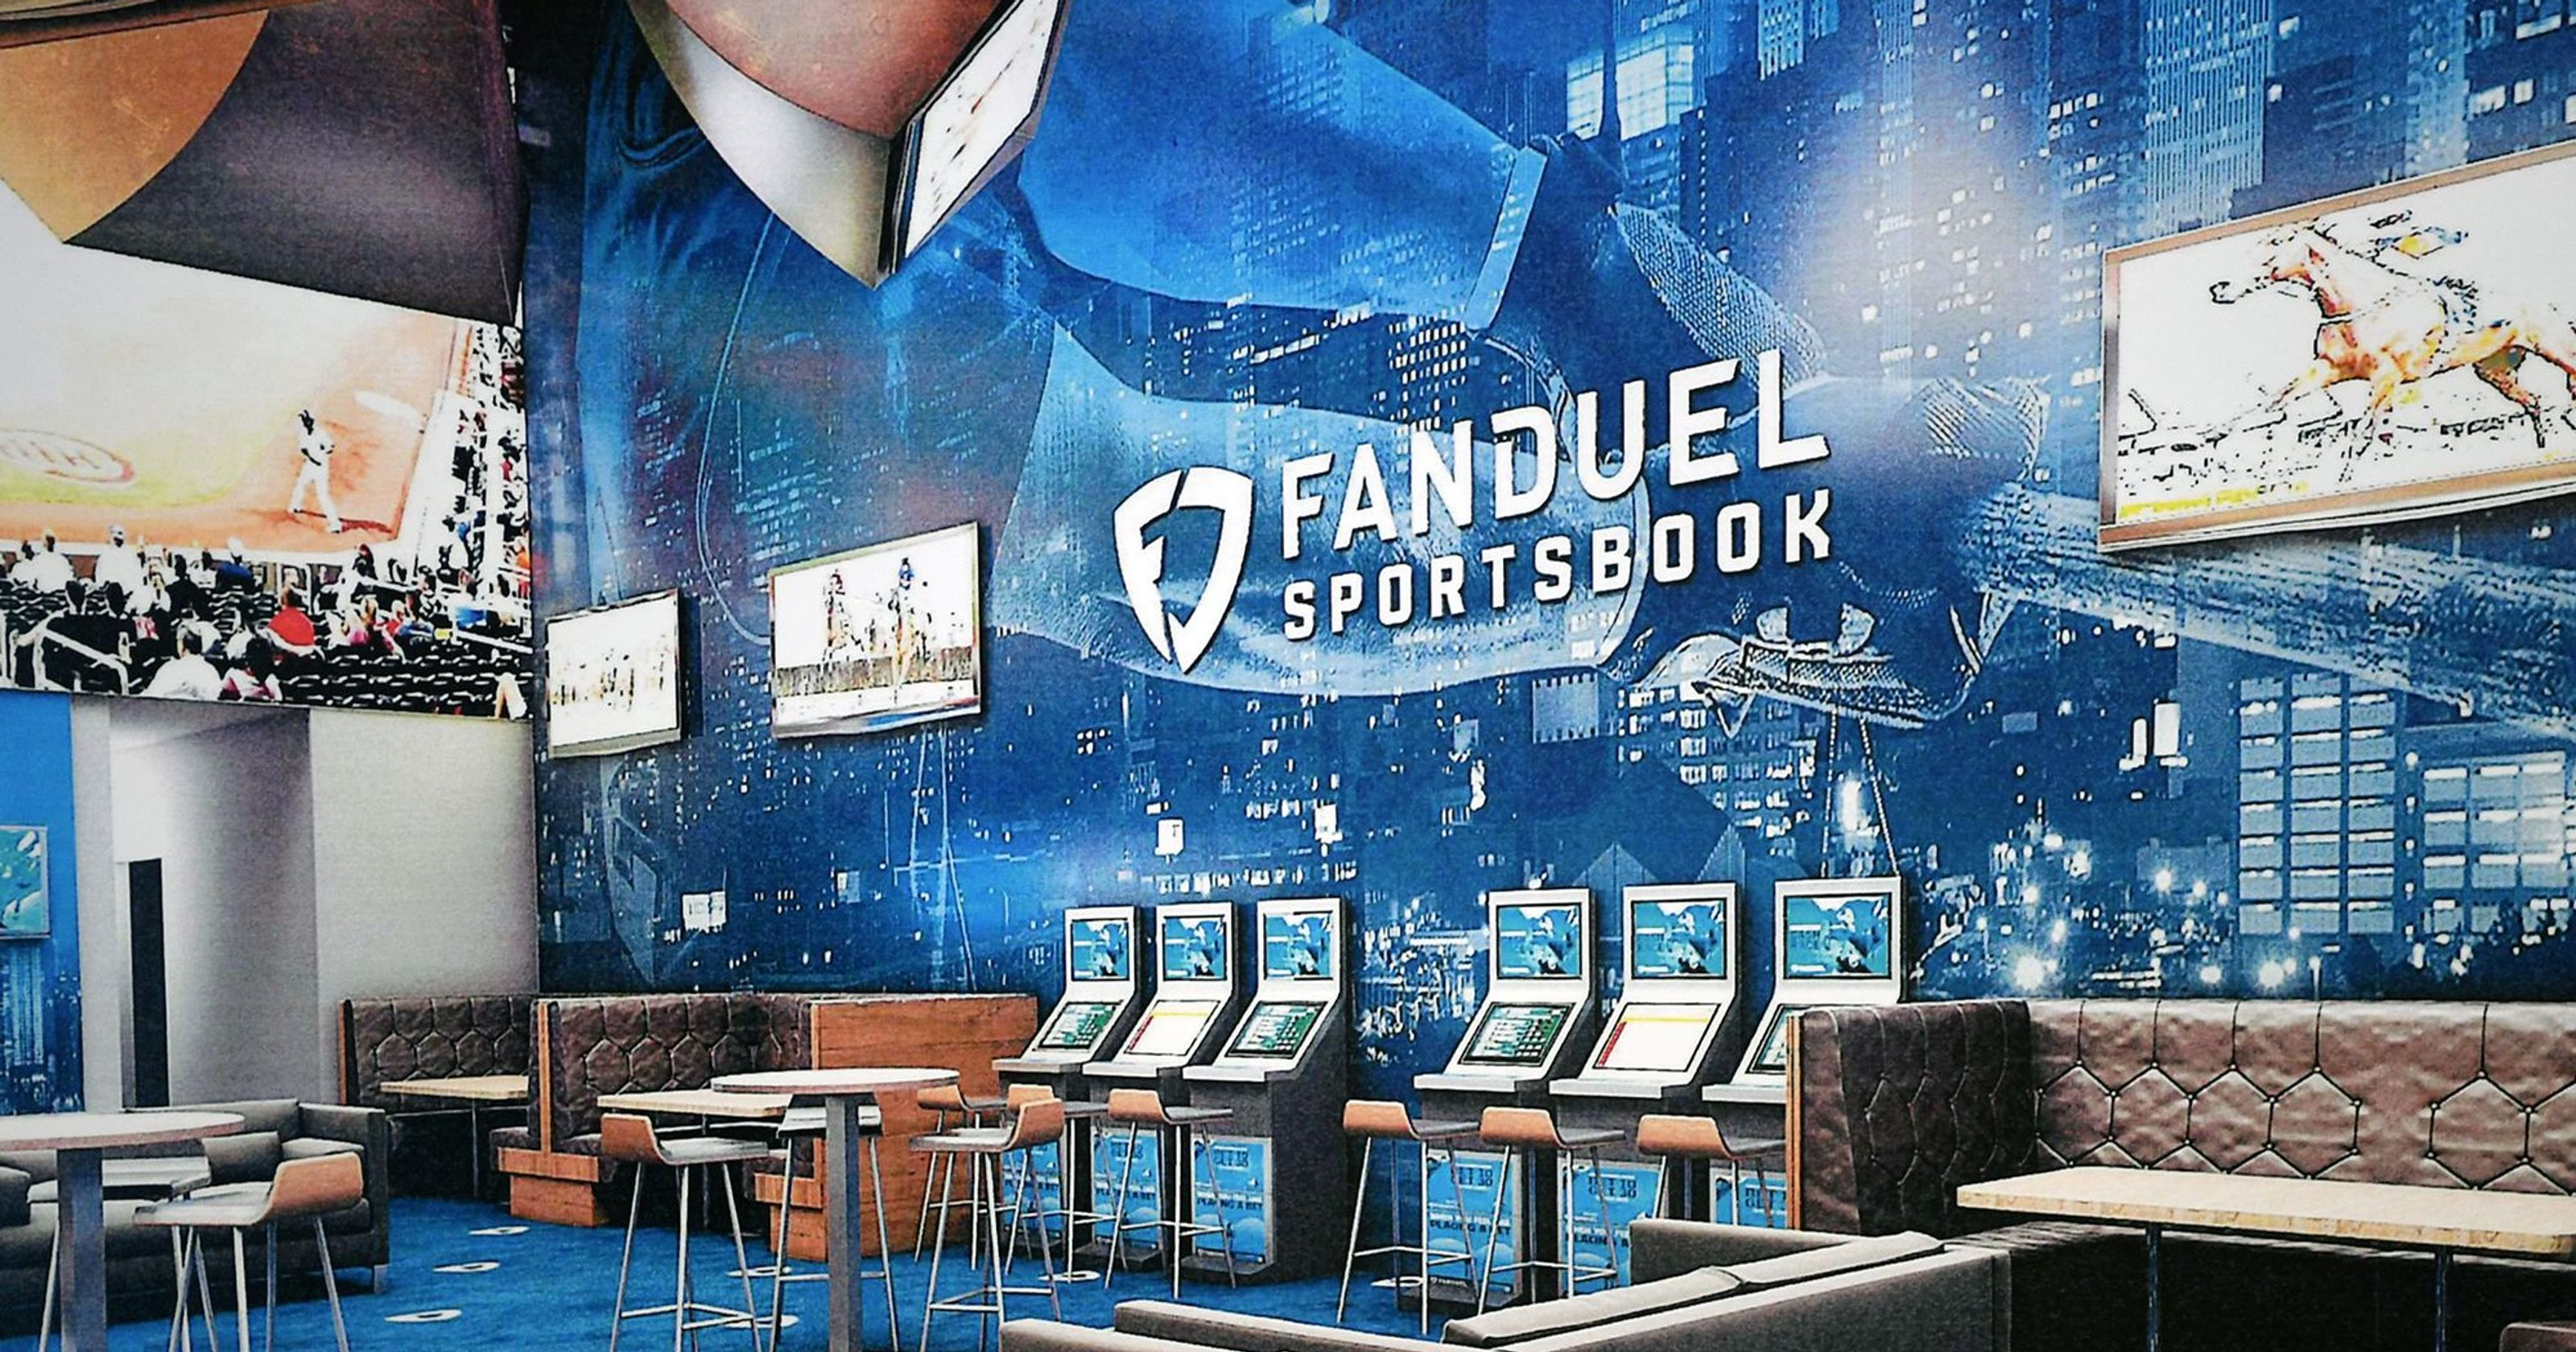 FanDuel agrees deal with Boyd Gaming